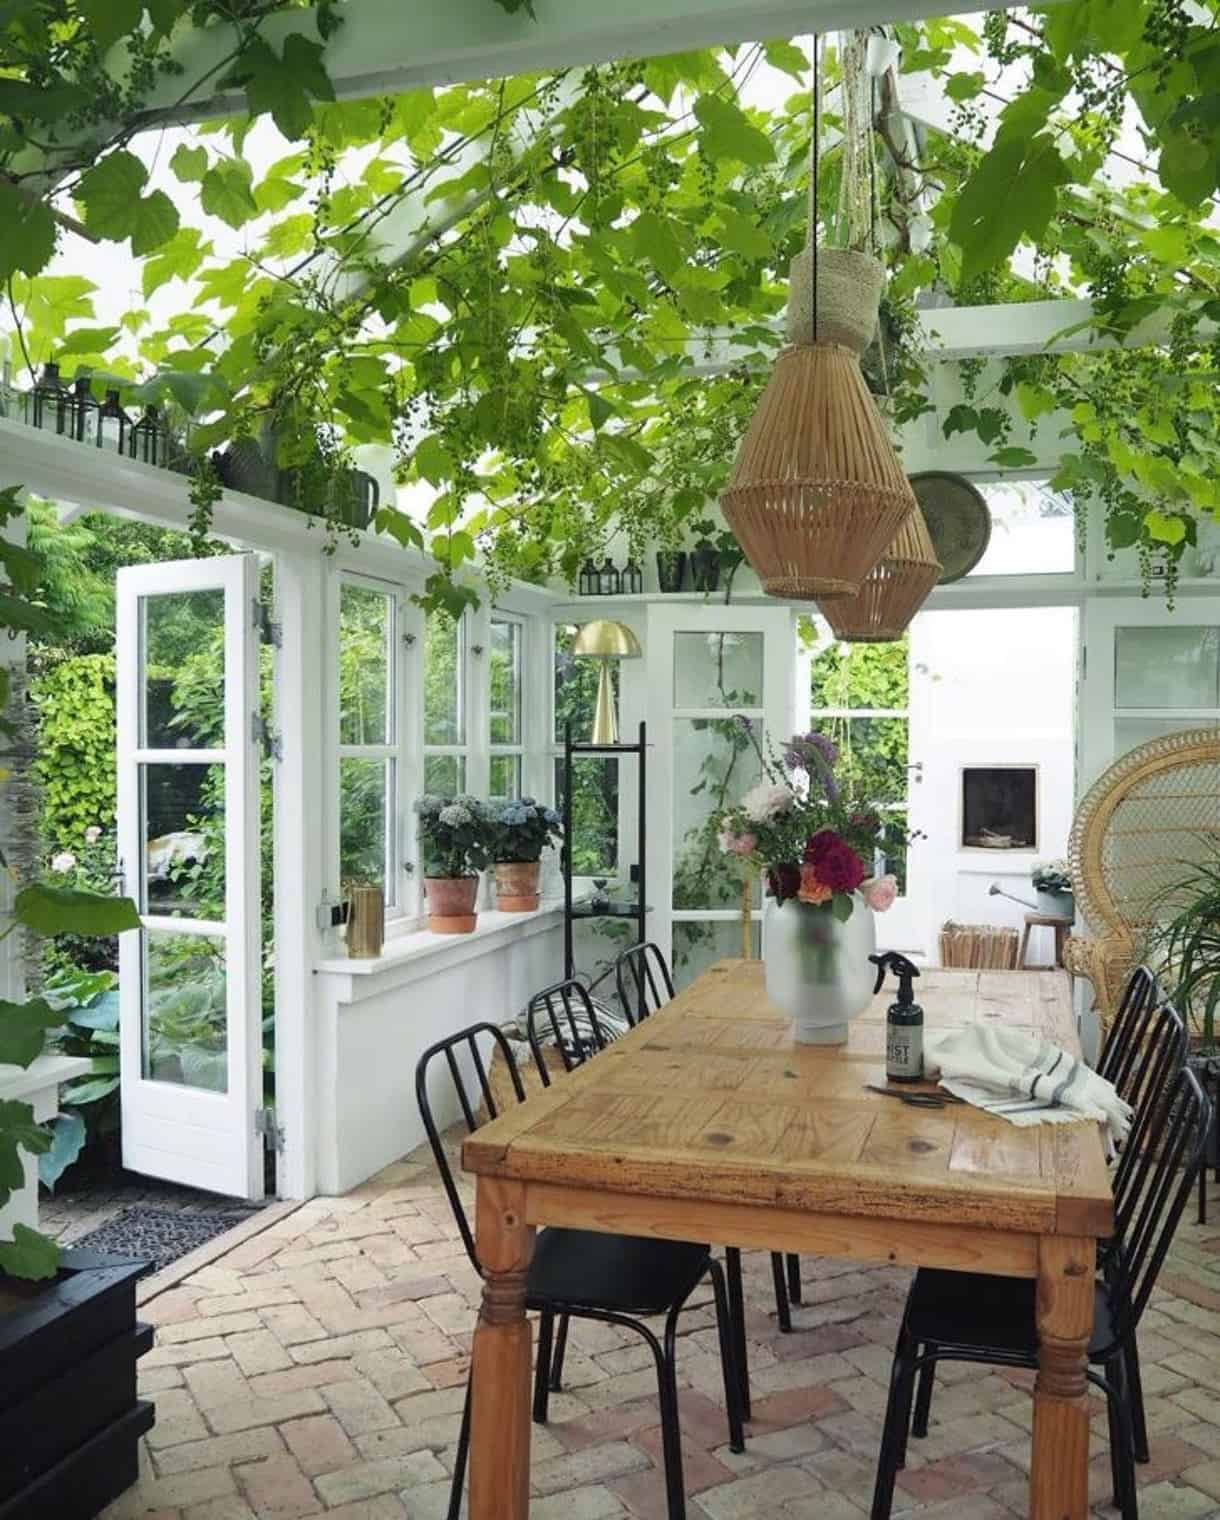 35+ Amazing conservatory greenhouse ideas for indoor-outdoor bliss